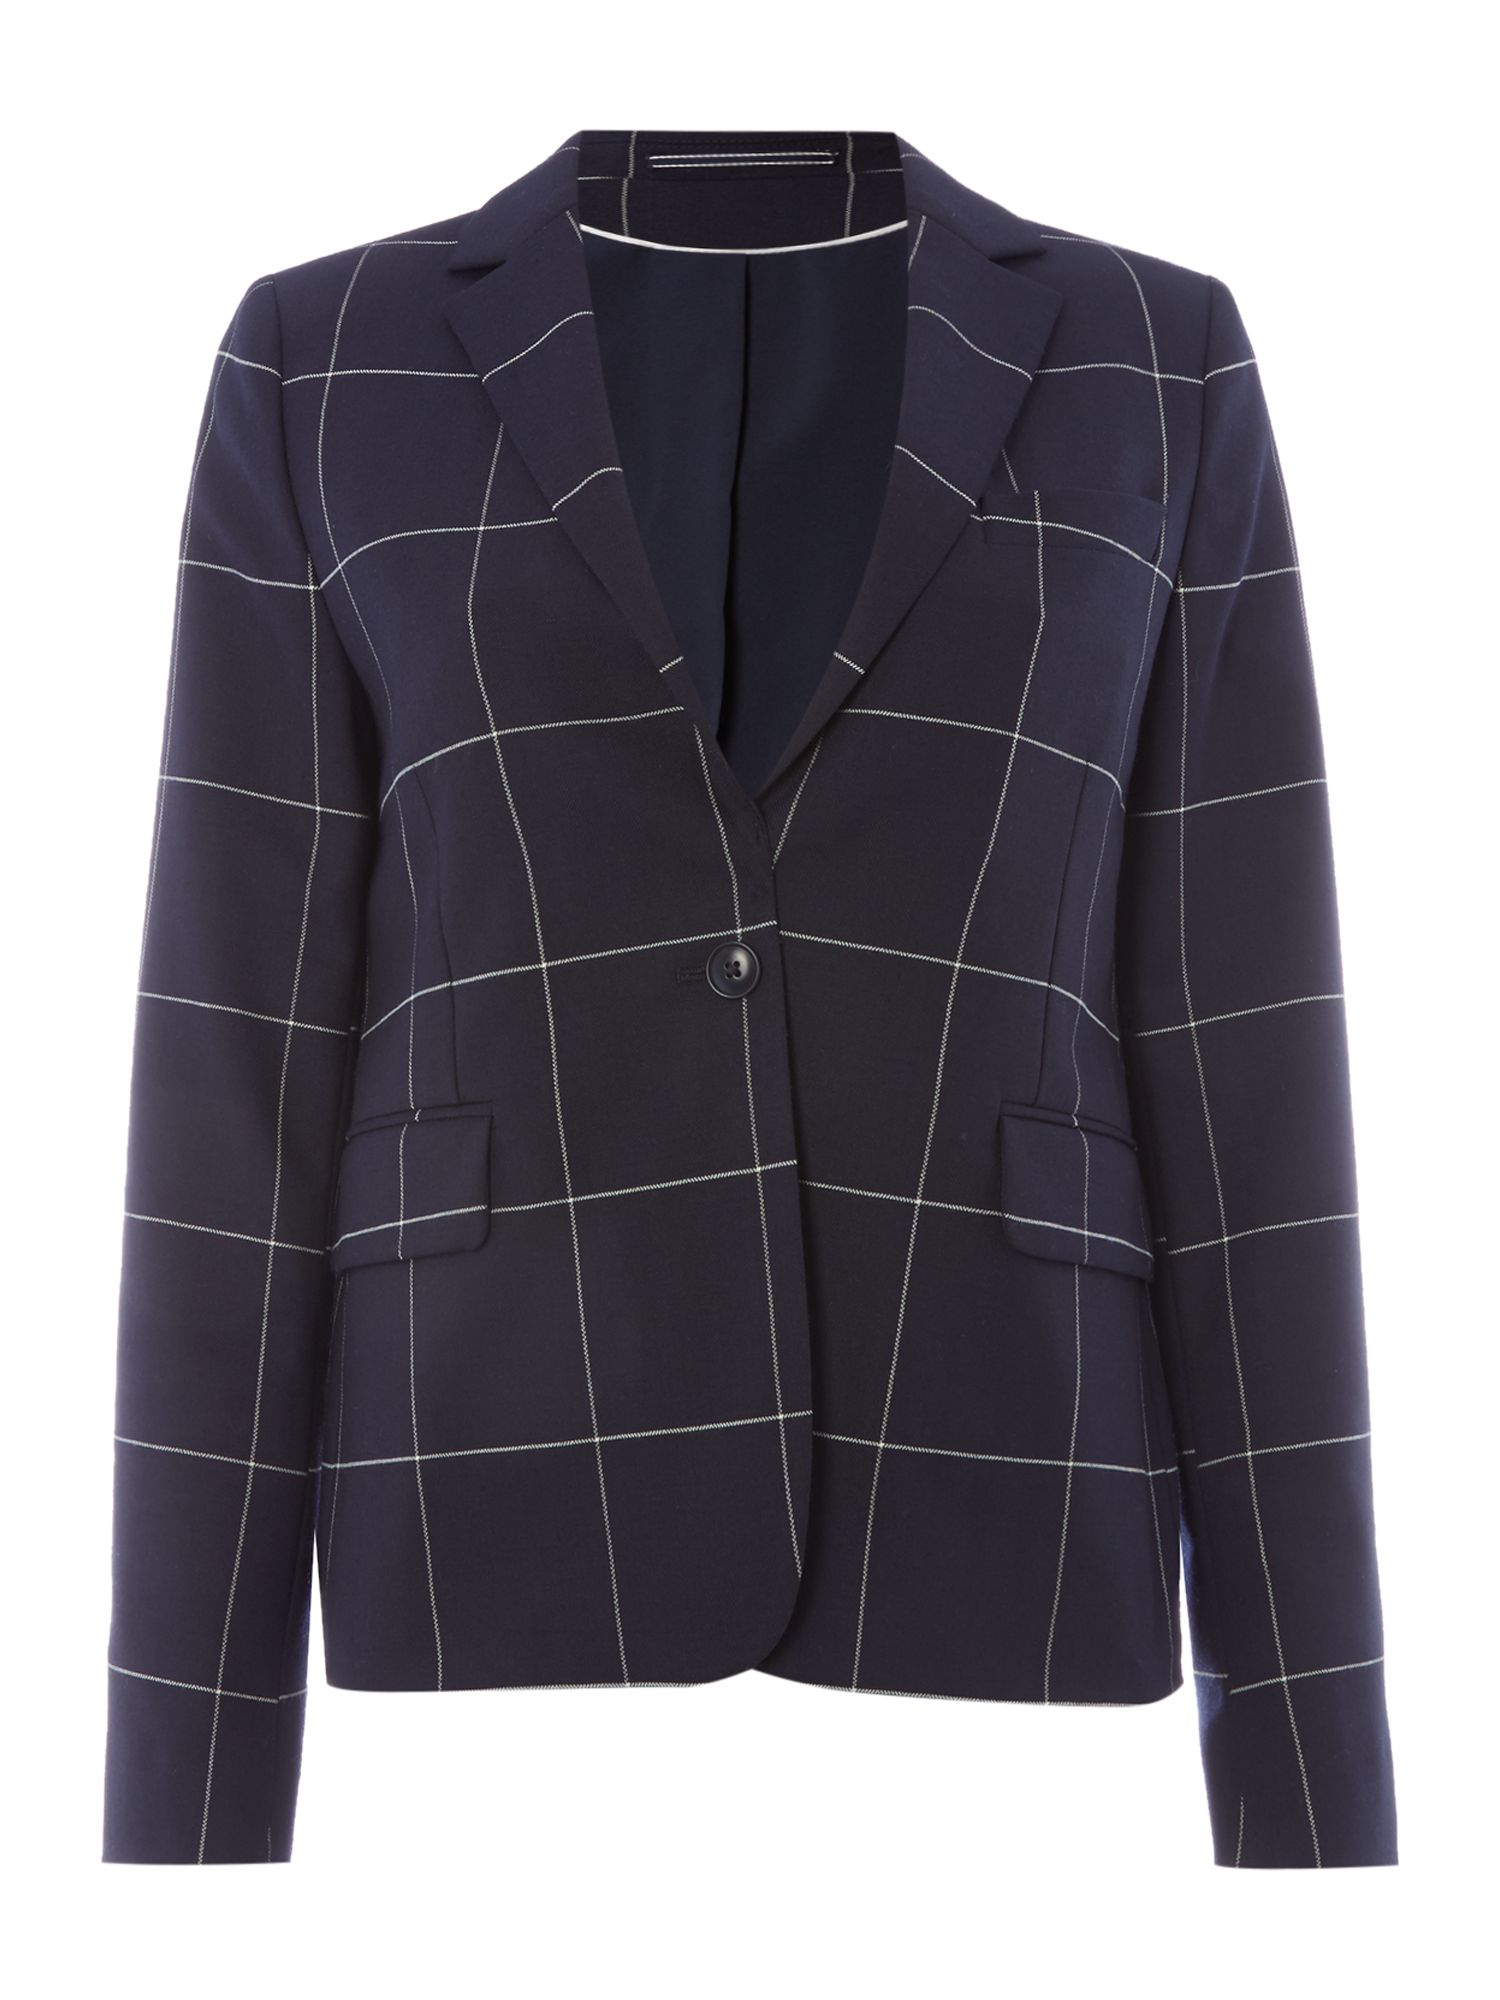 Gant Blazer With Single Button In Checked Pattern, Midnight Blue